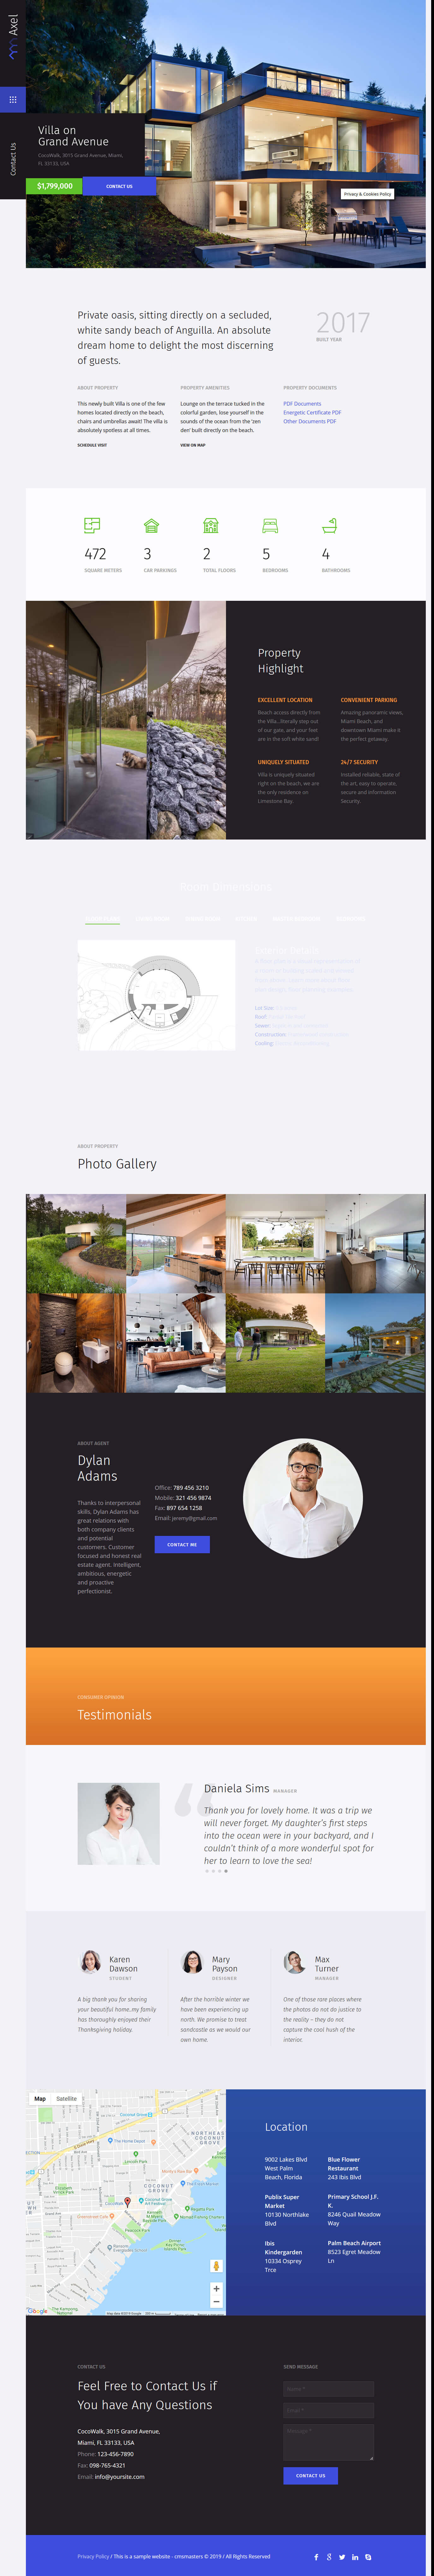 axel best premium home rental property wordpress theme - 10+ Best Premium Home Rental and Property WordPress Themes